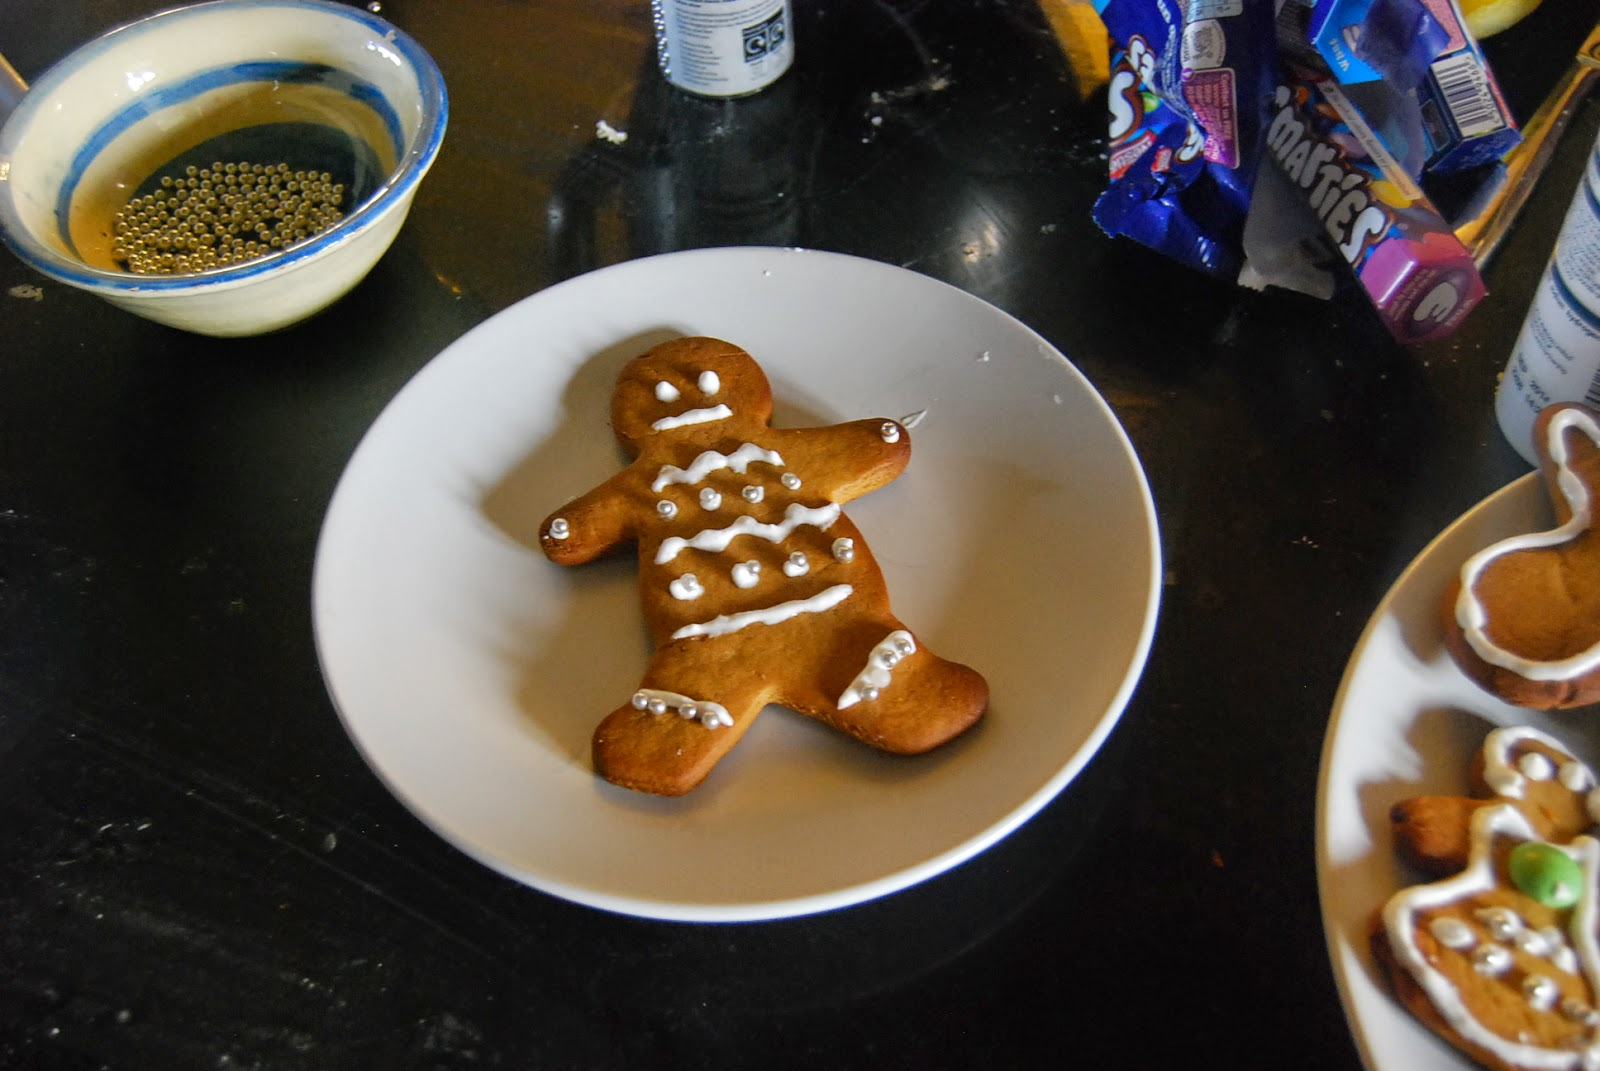 The Gingerbread station for decorating